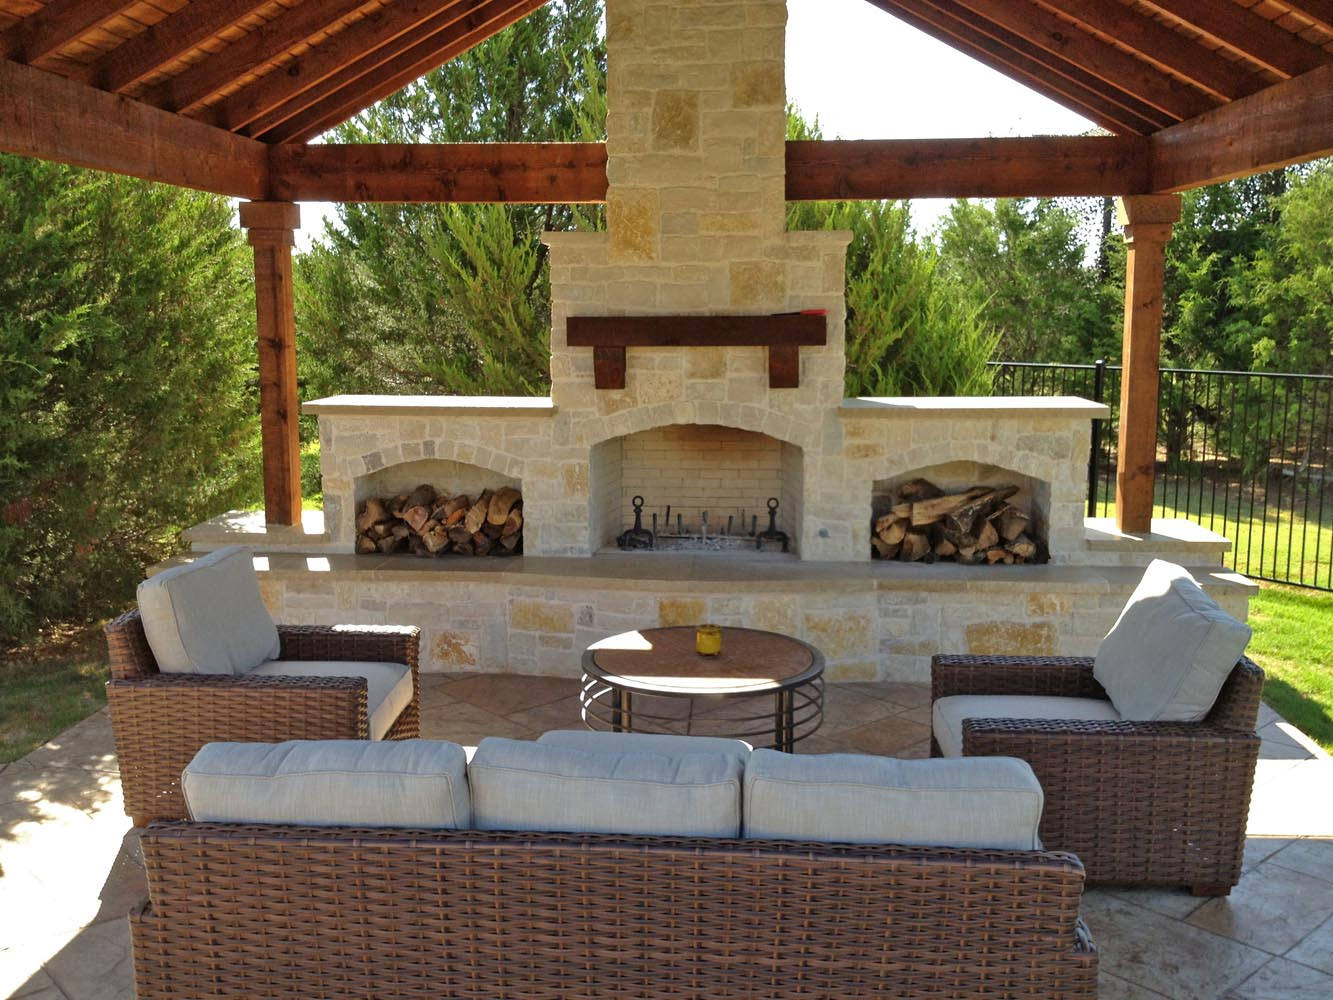 Outdoor Patio Design Pictures Dallas Outdoor Living Gallery Frisco Outdoor Kitchen Plano